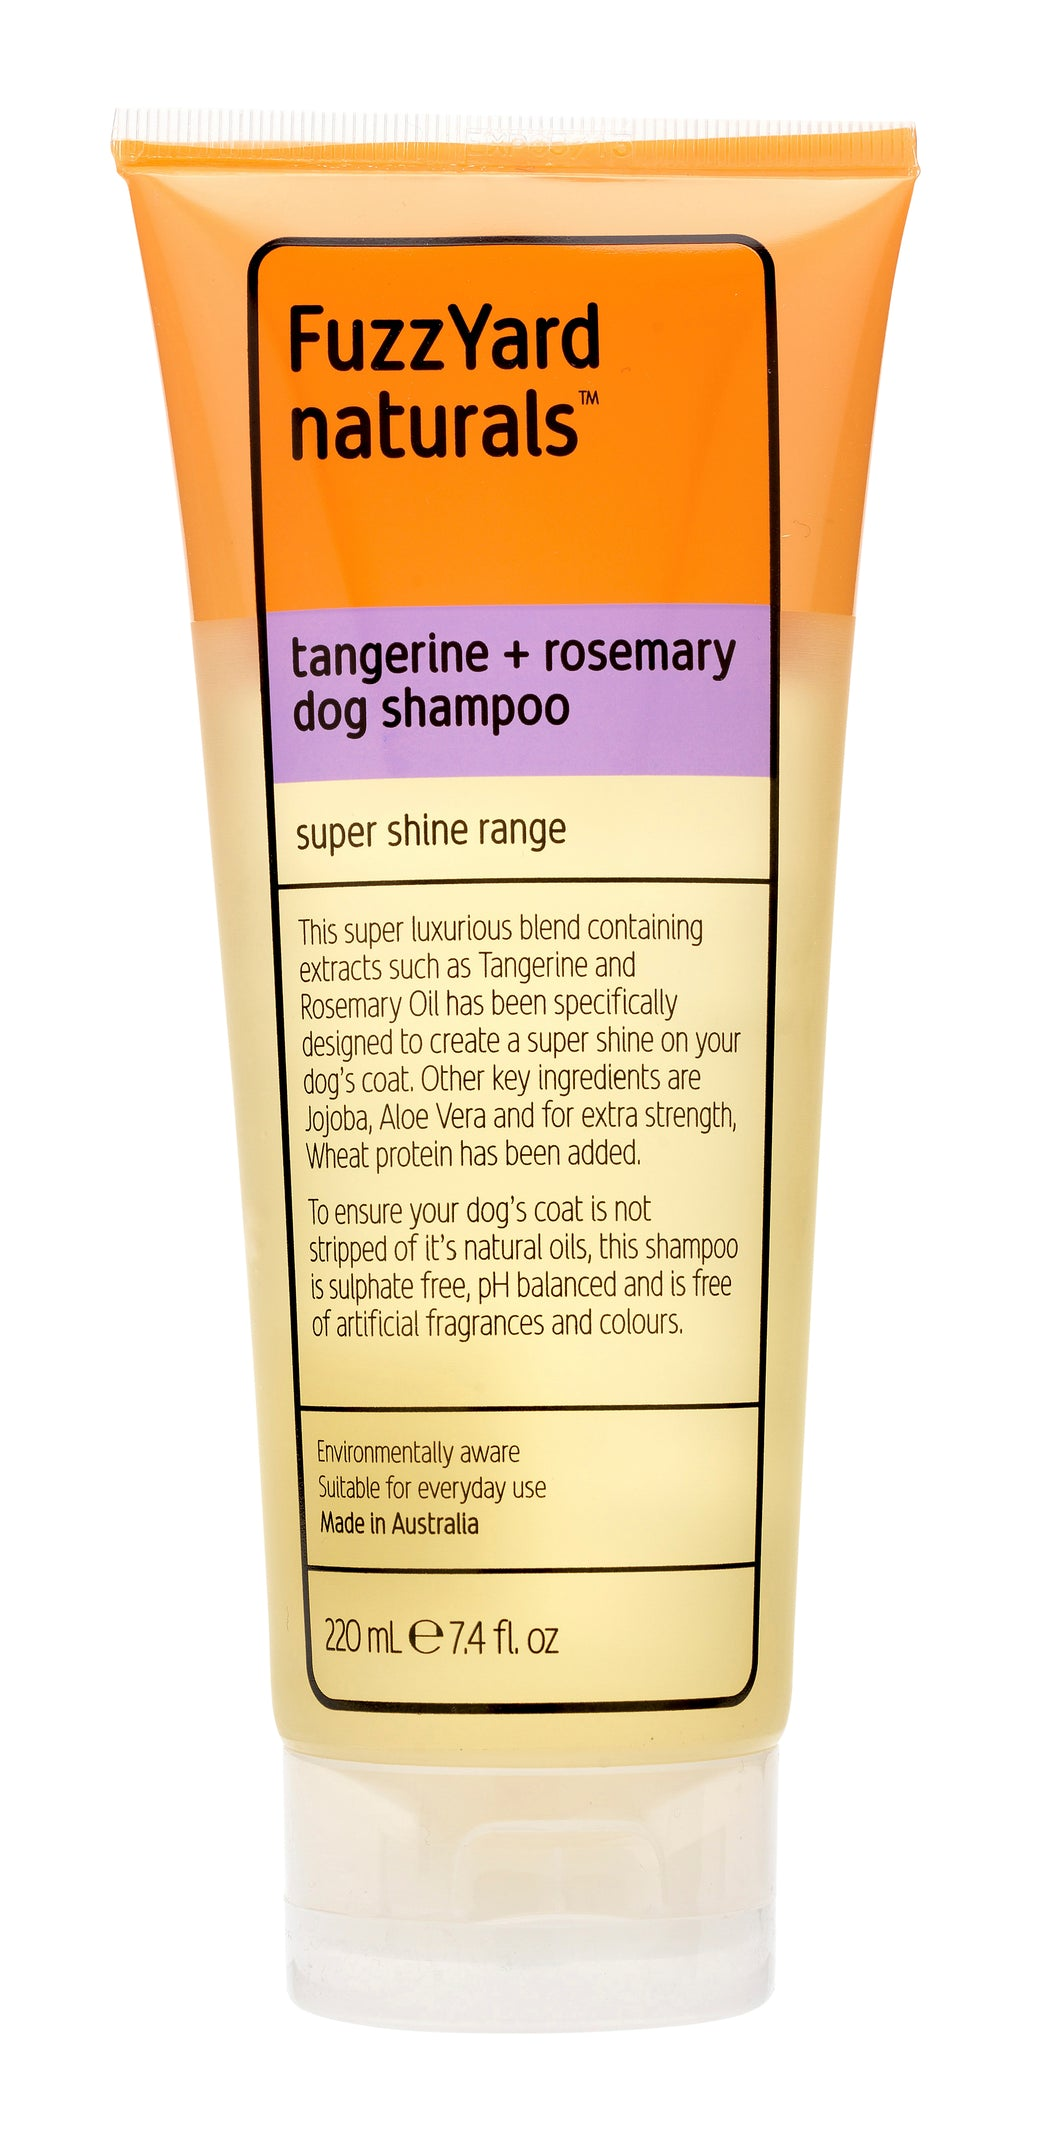 FuzzYard Naturals - Tangerine + Rosemary Super Shine Shampoo 220ml